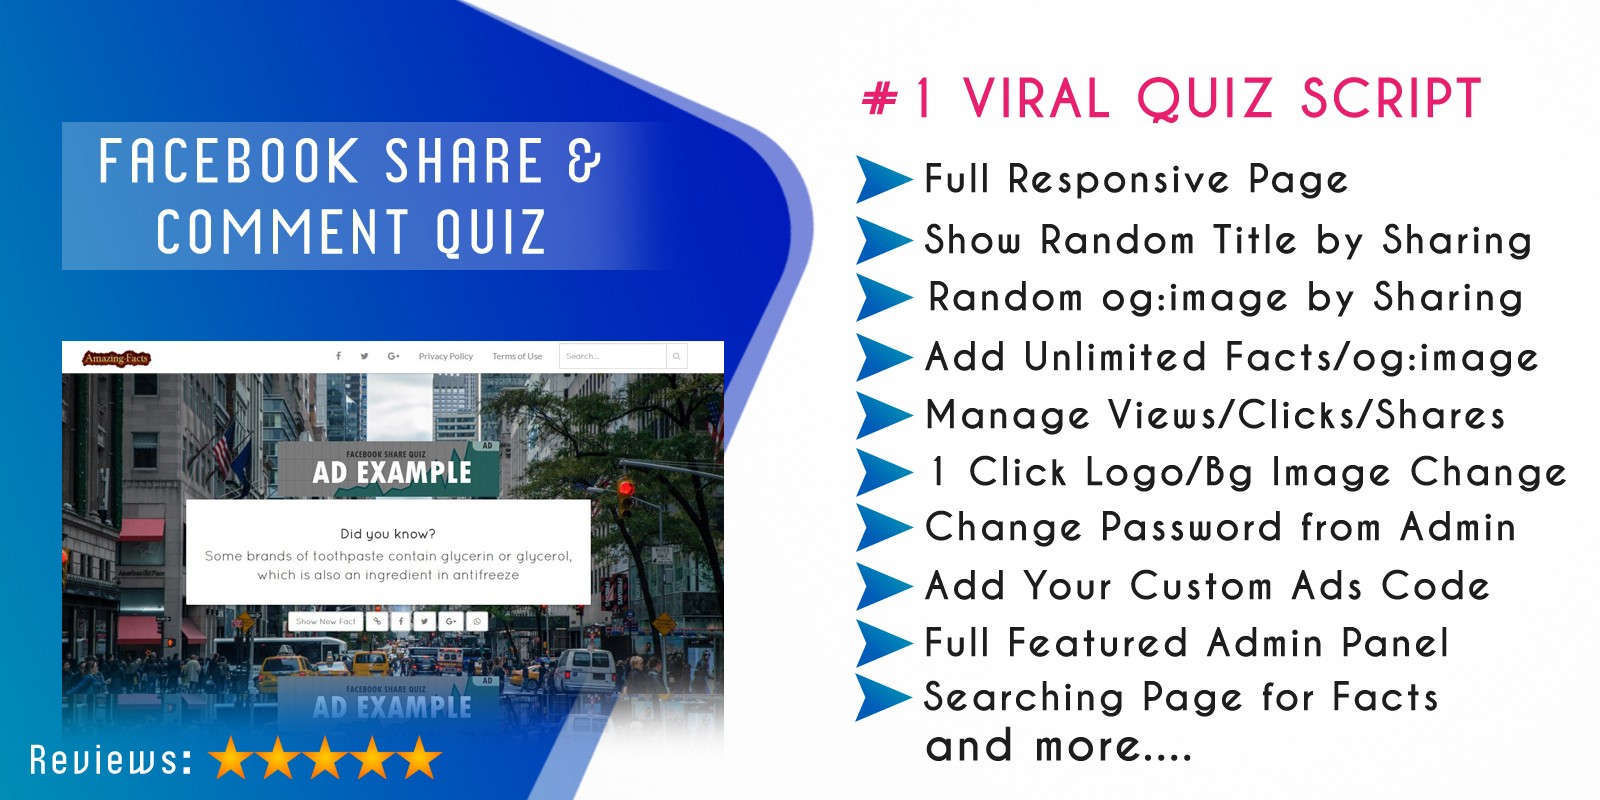 Facebook Share Quiz Script